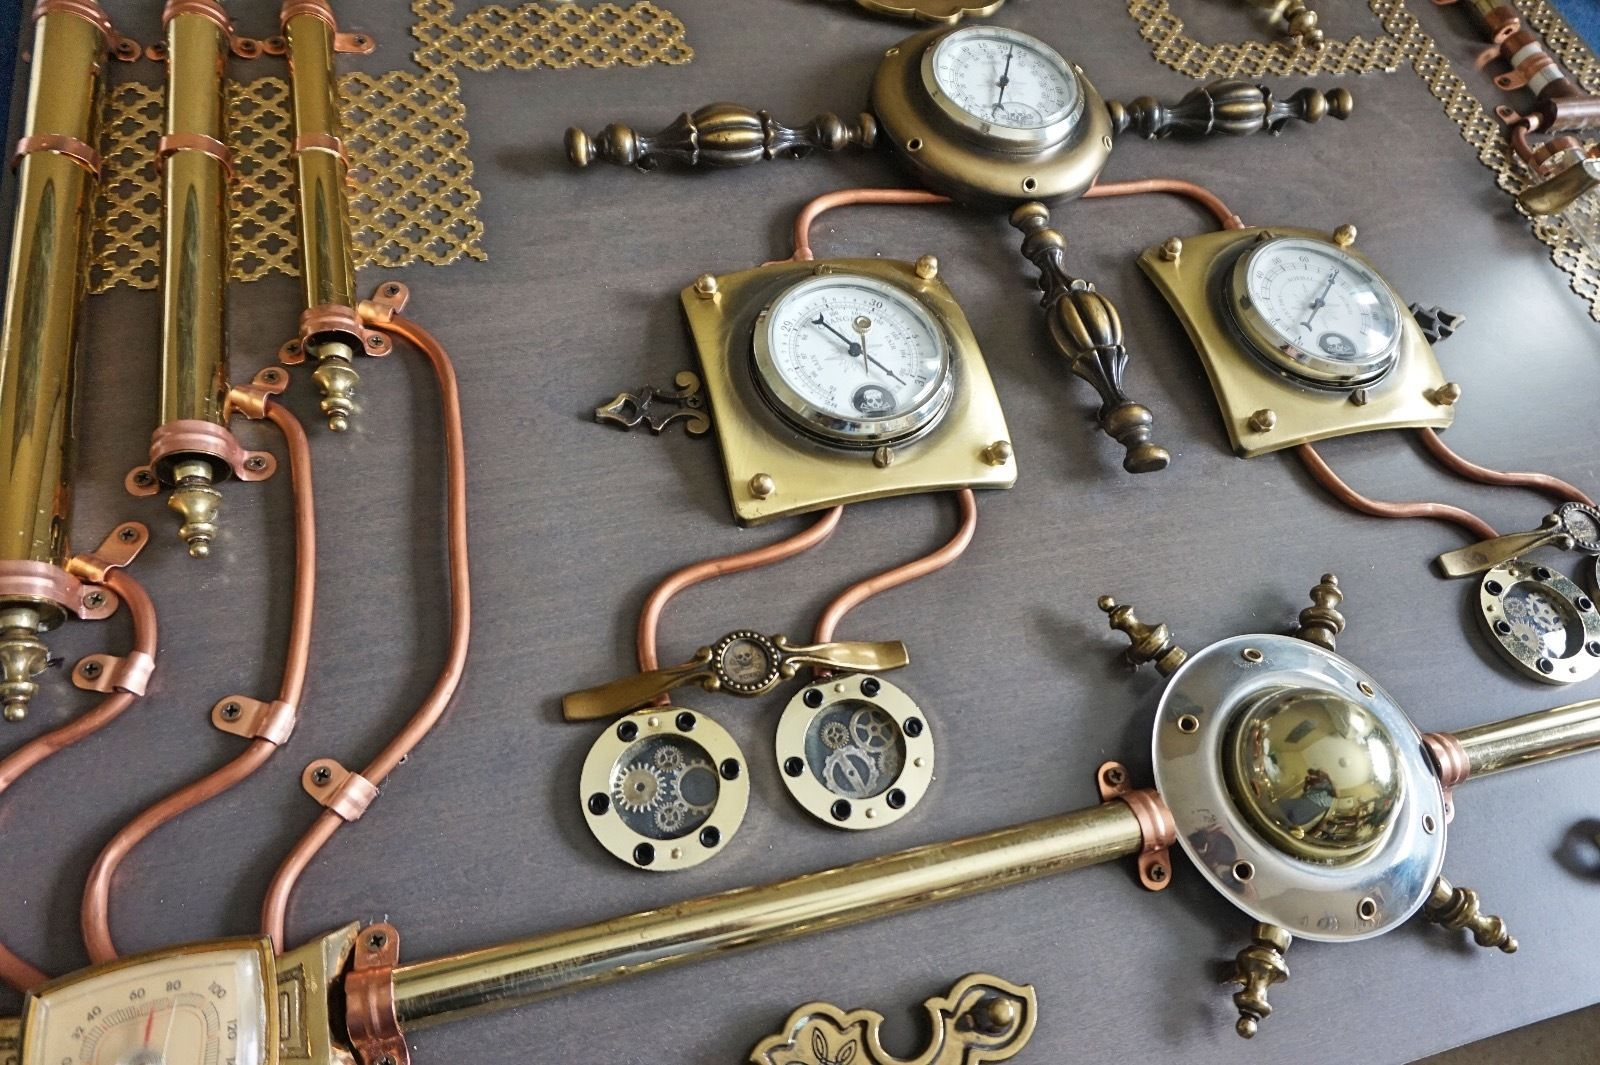 Abstract Industrial Art Control Panel Steampunk Wall Art Home